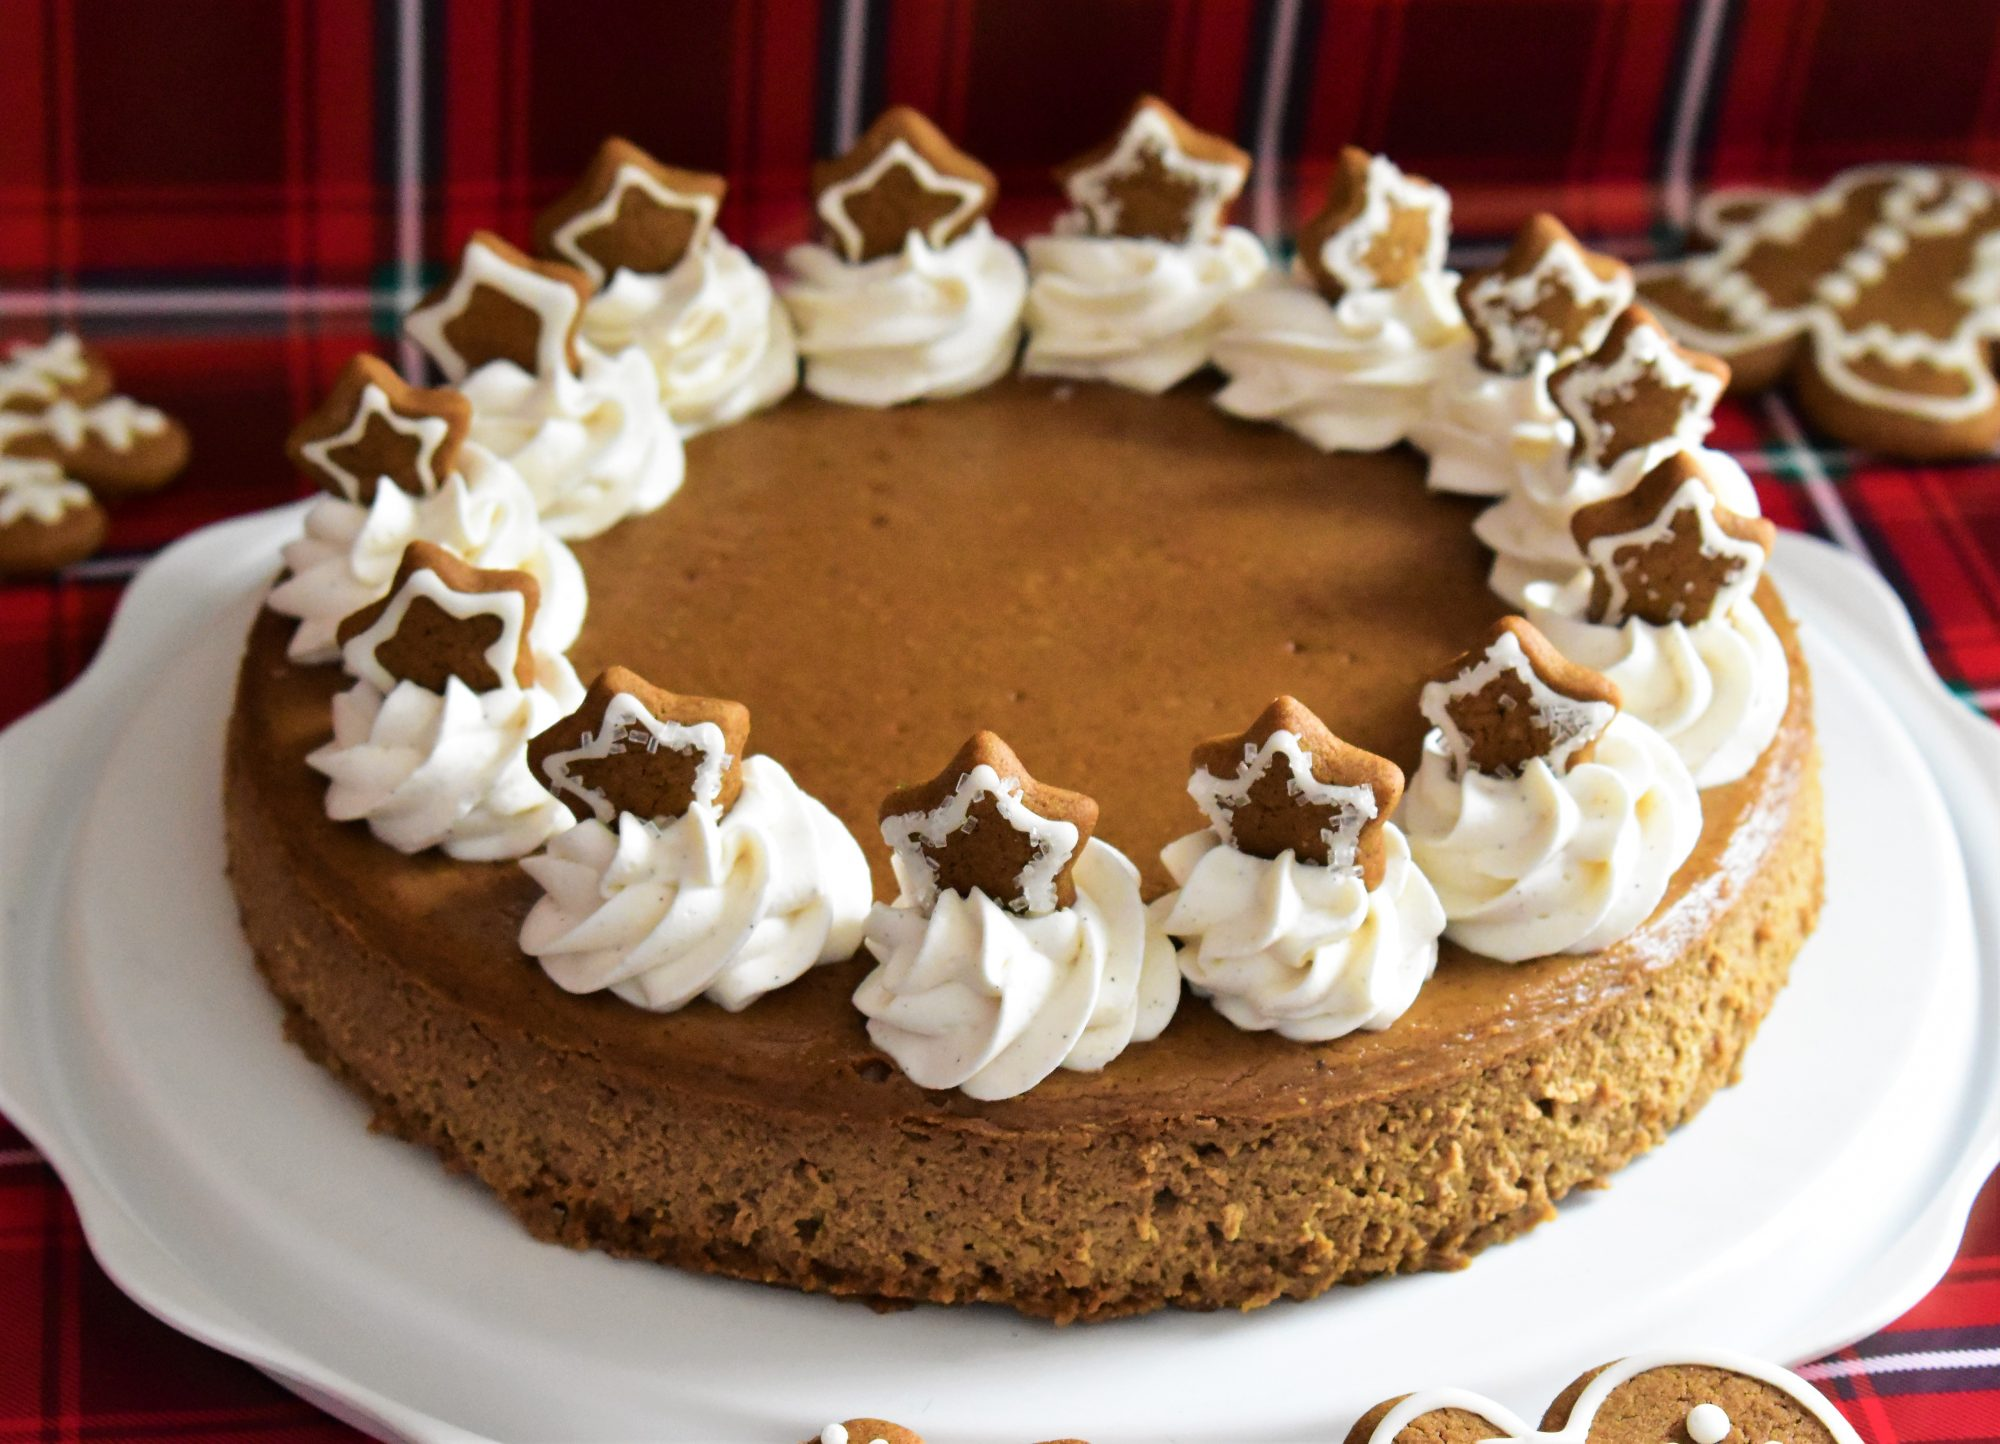 gingerbread cheesecake topped with whipped cream and cookies